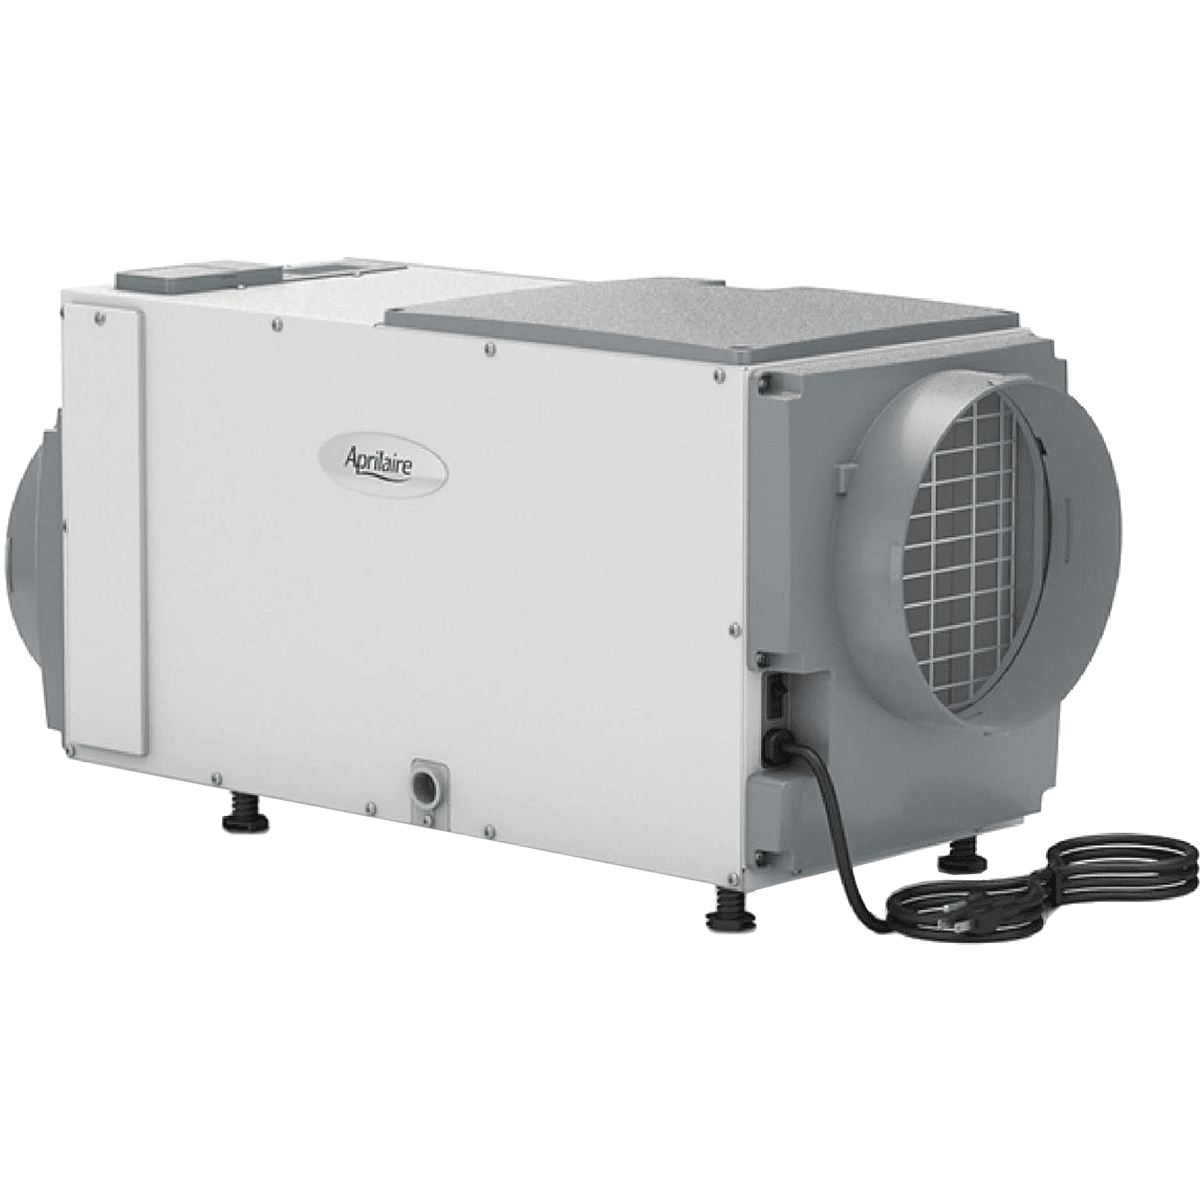 Image of Aprilaire 1870 130-pint Whole House Dehumidifier